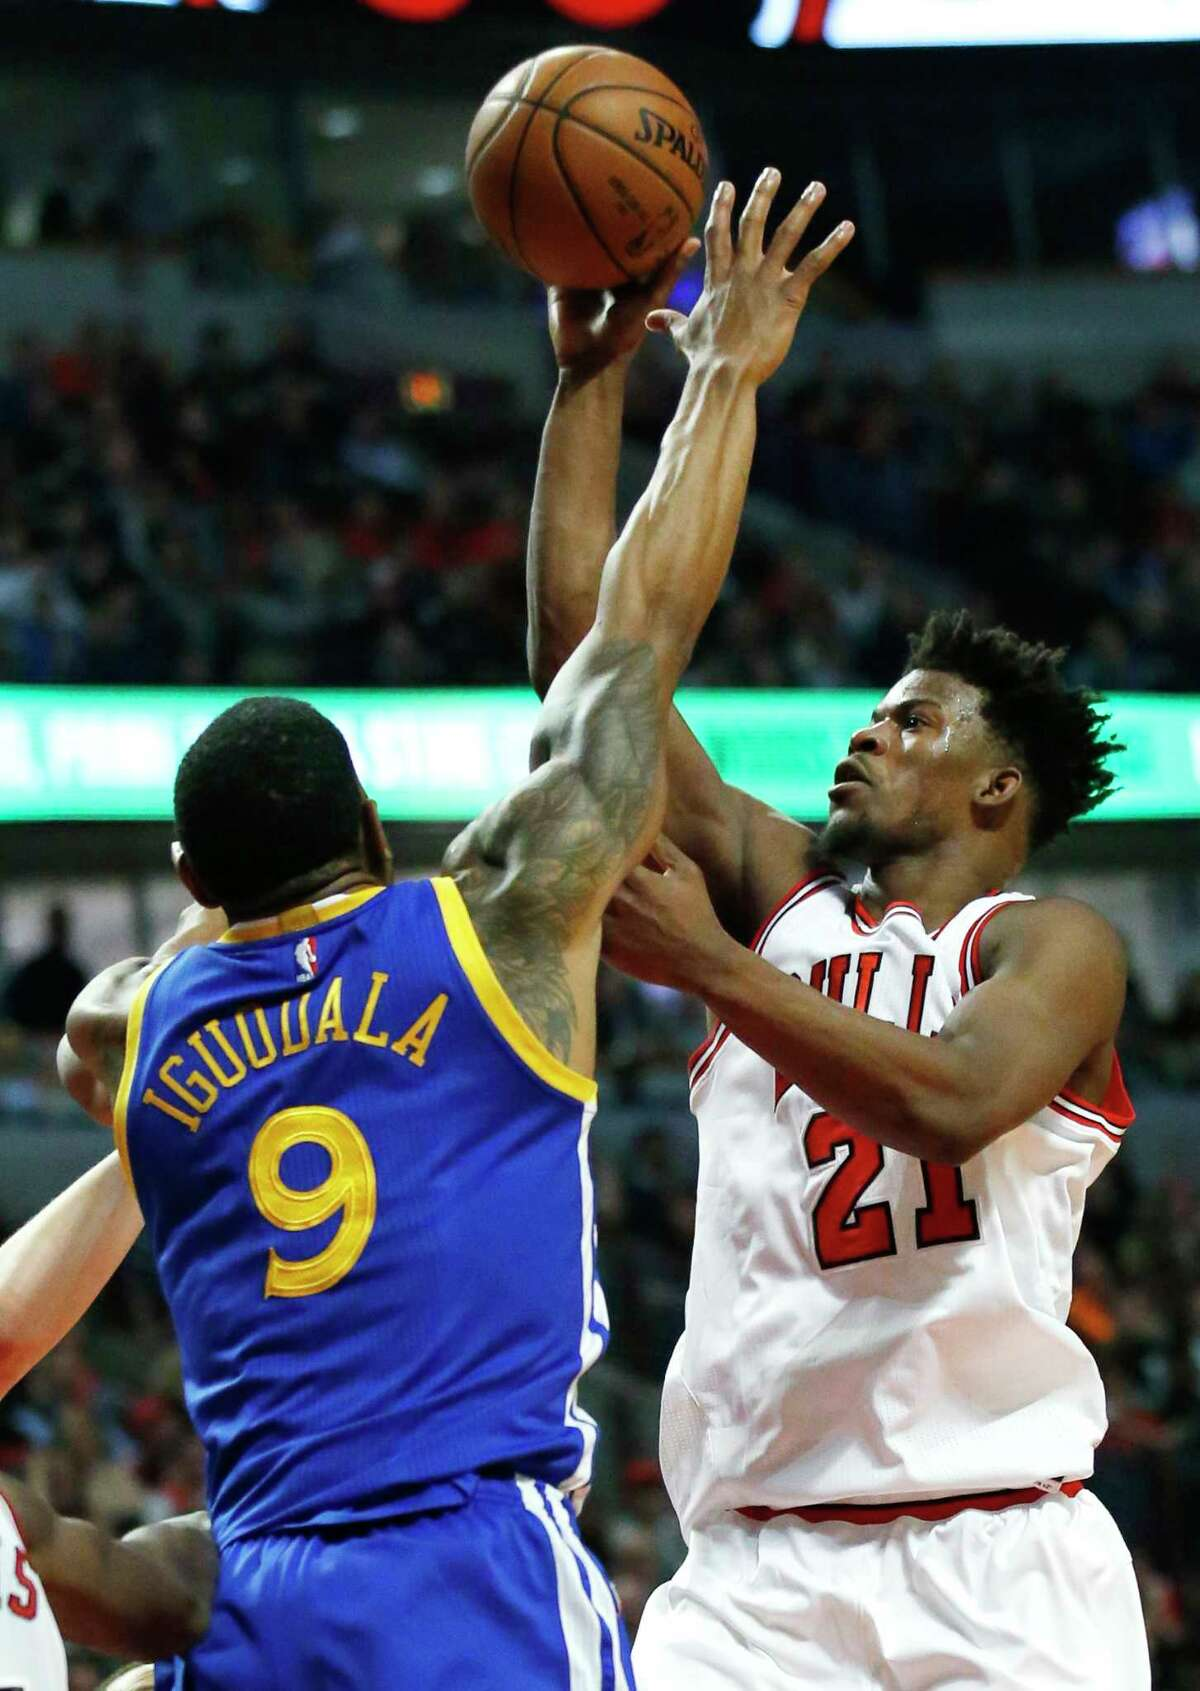 Chicago Bulls' Jimmy Butler, right, shoots against Golden State Warriors' Andre Iguodala during the second half of an NBA basketball game Thursday, March 2, 2017, in Chicago. The Bulls won 94-87. (AP Photo/Nam Y. Huh) ORG XMIT: CXA115